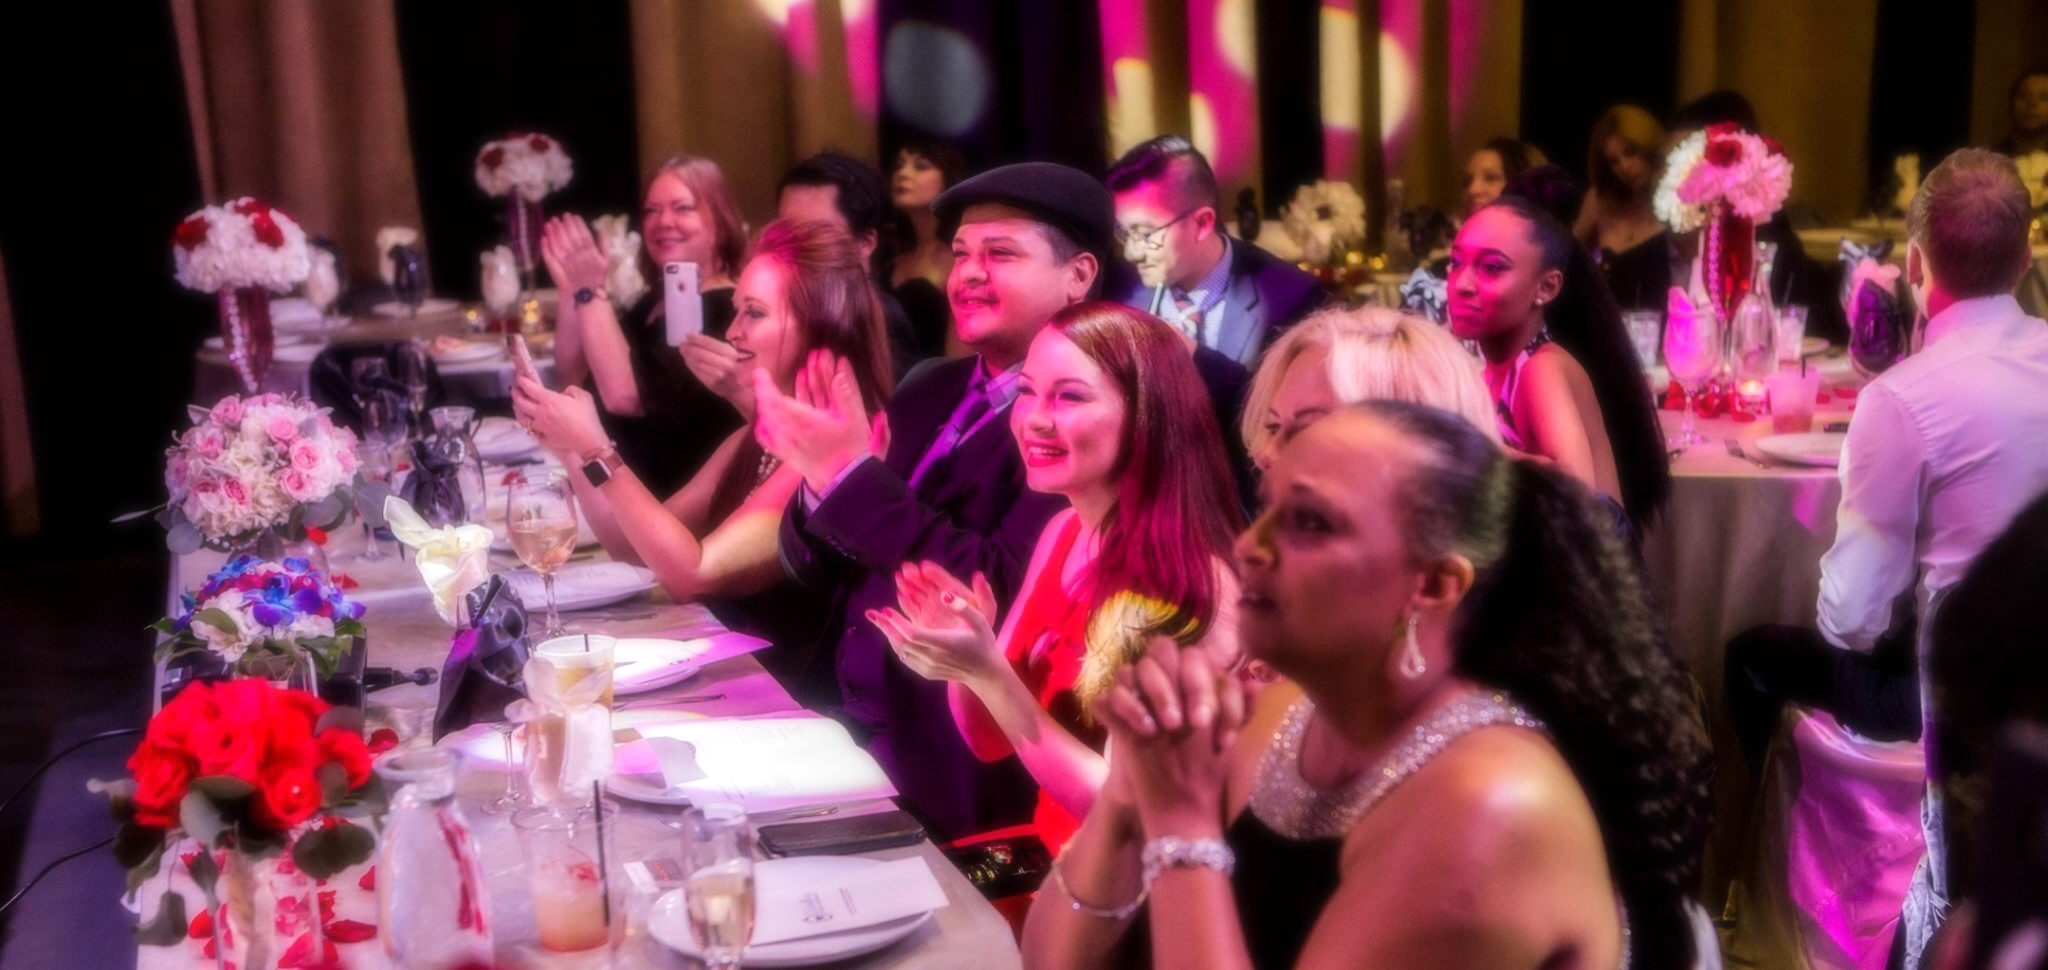 Sergio Daae sits at the center of the Judging Panel at The Las Vegas Wedding Video Awards, and performed as a Headline Entertainer for the event.